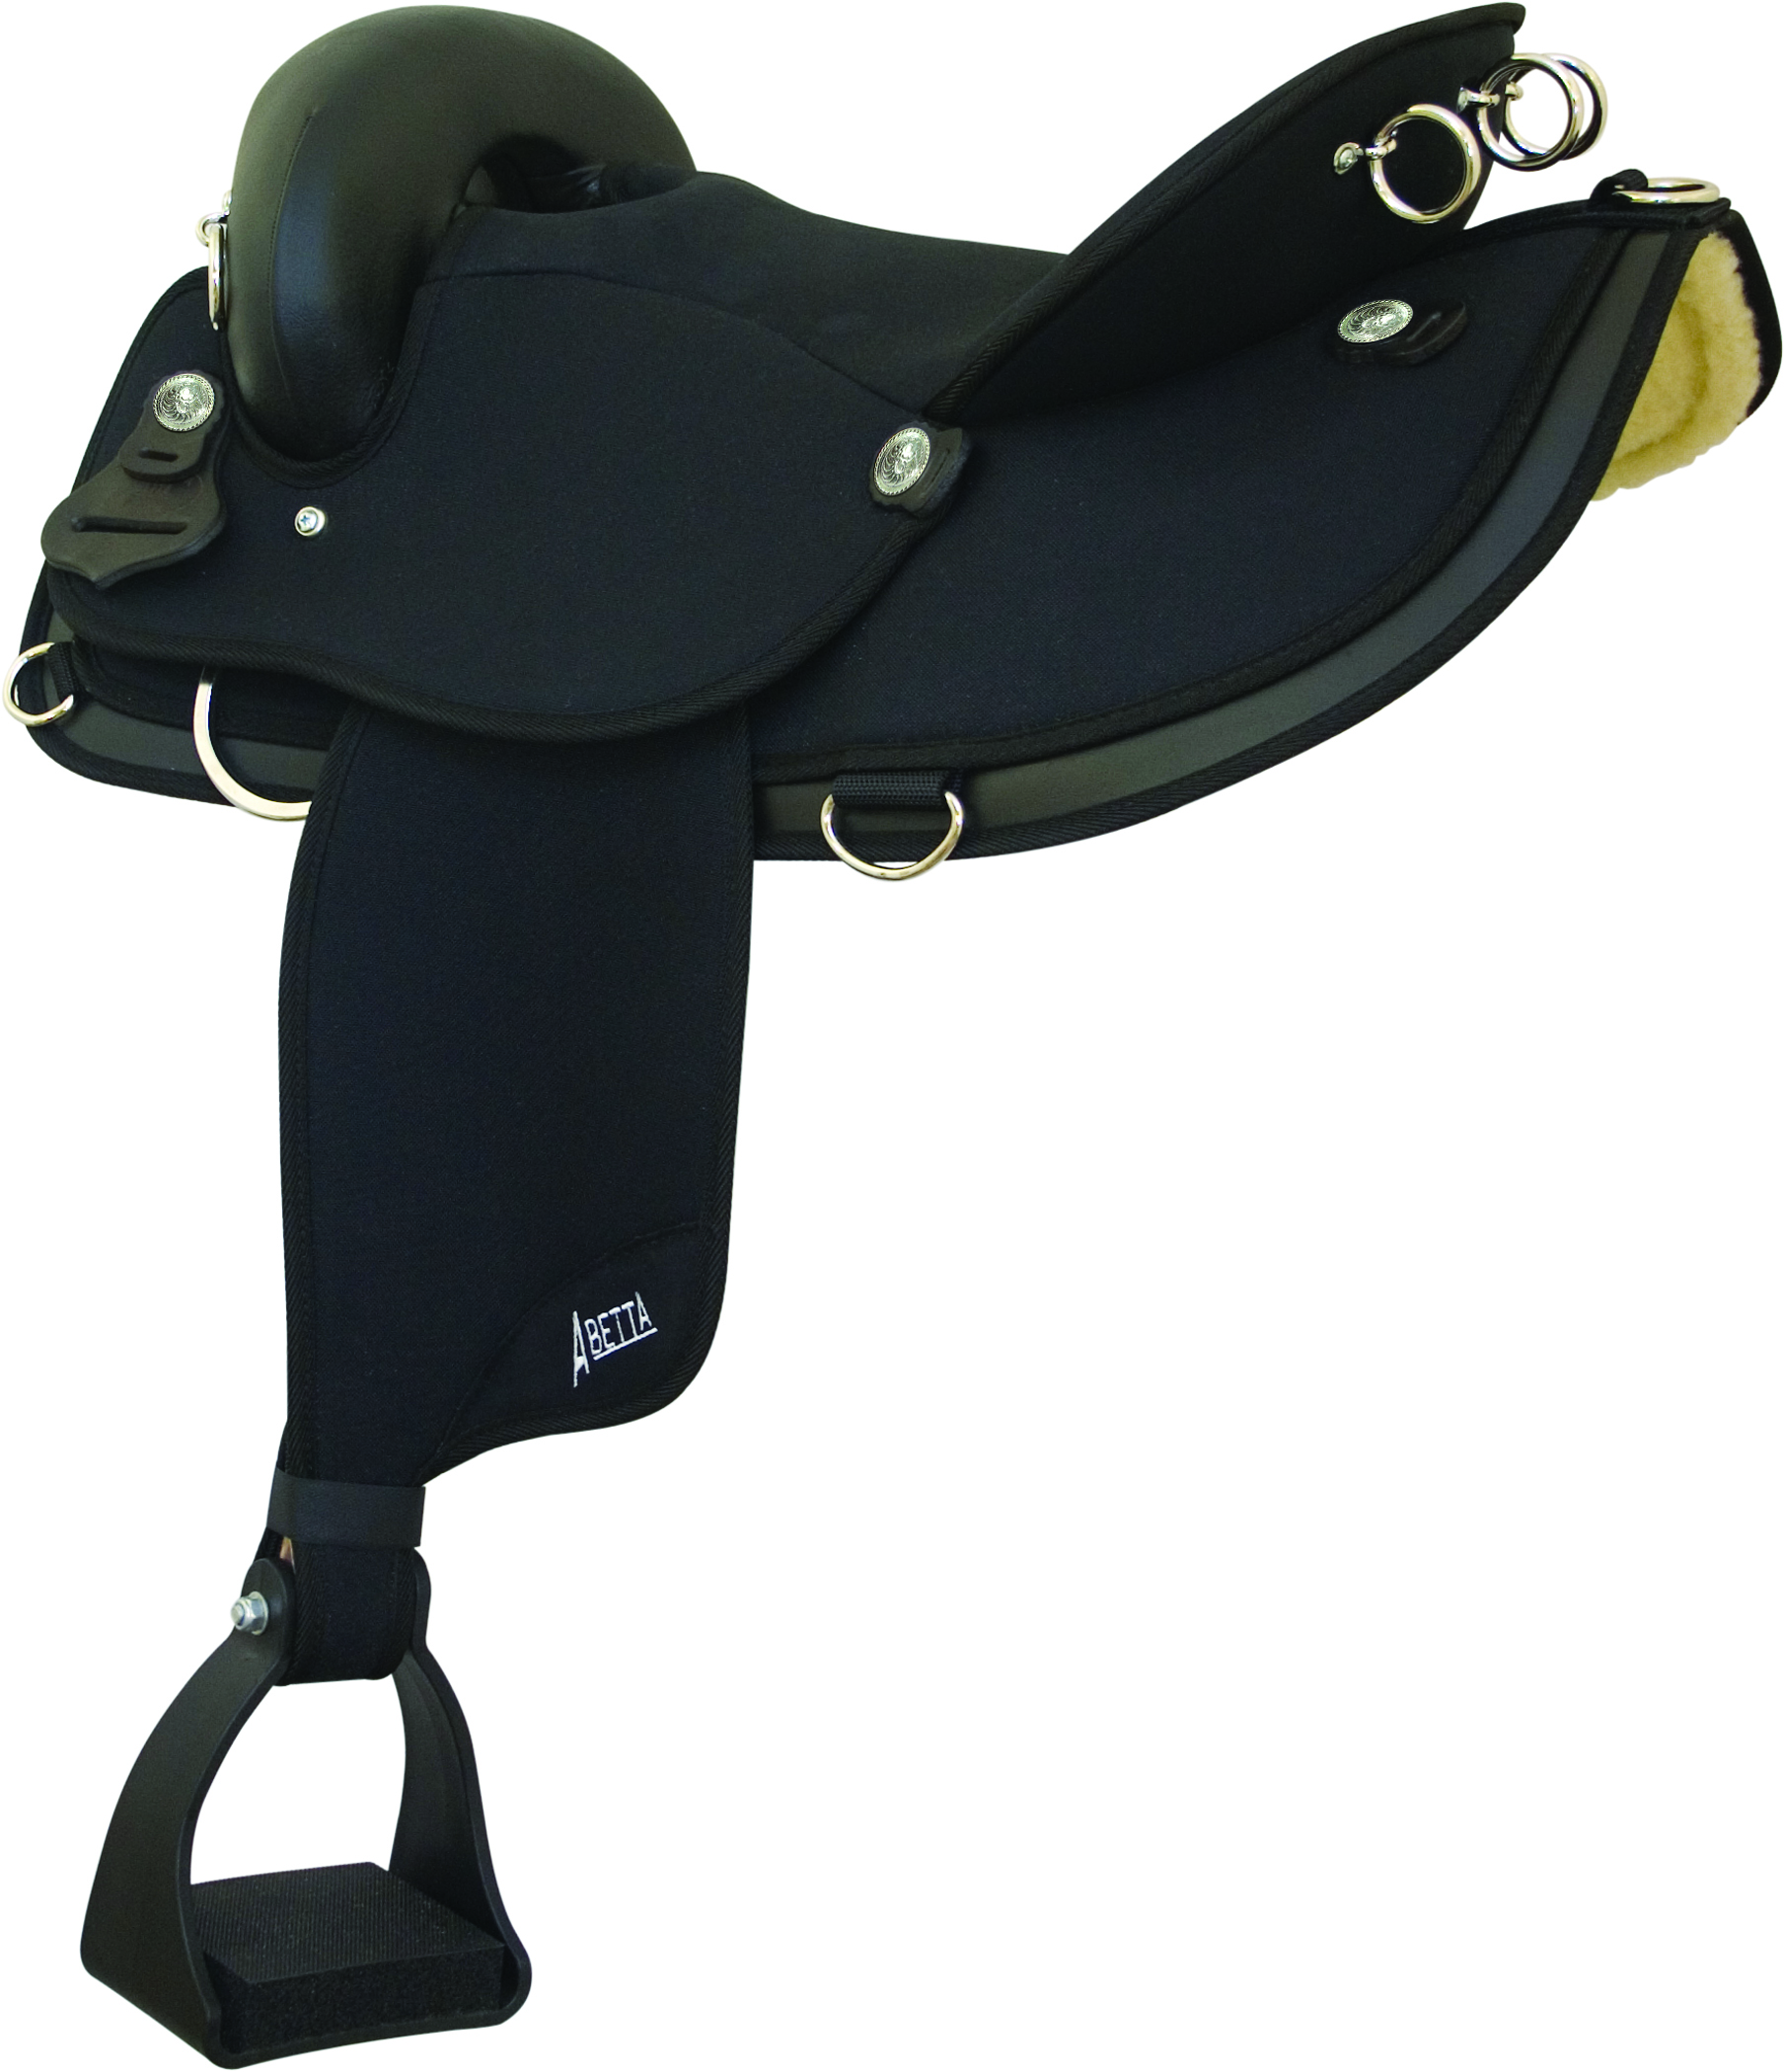 Abetta Gaited Flex Trail Saddle